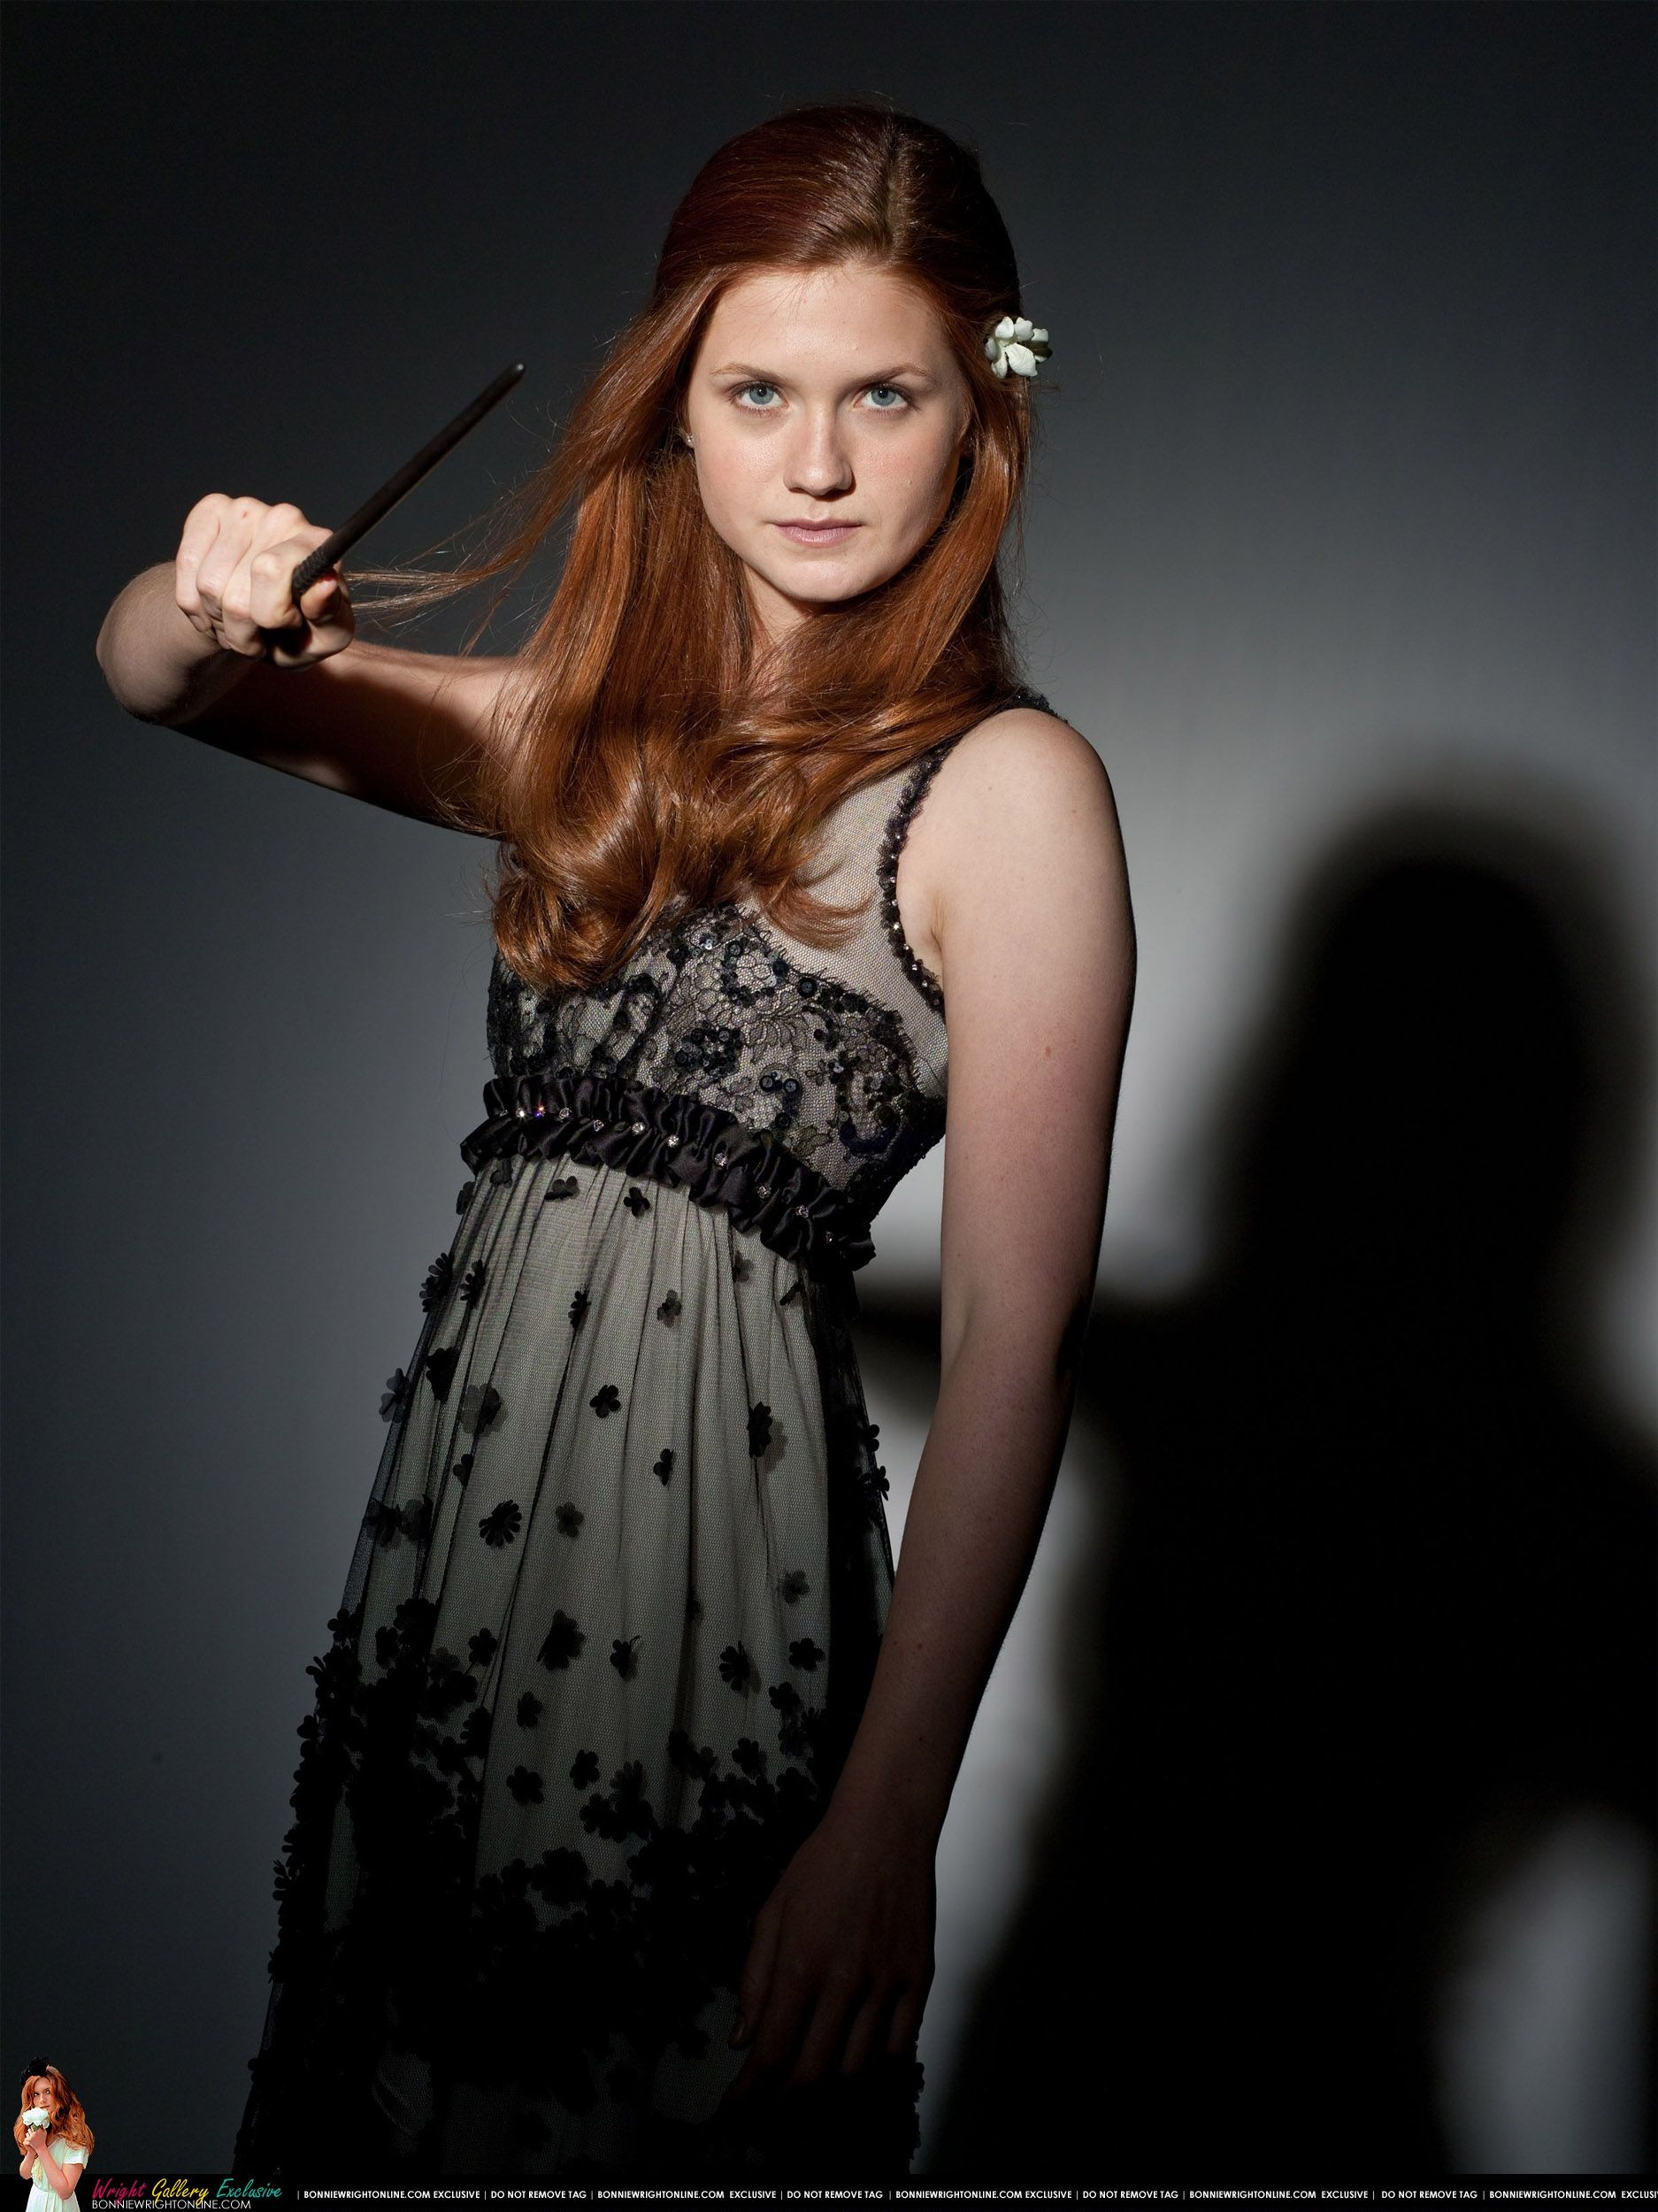 Ginny Weasleymy Idol! She's Got The Most Balls Out Of